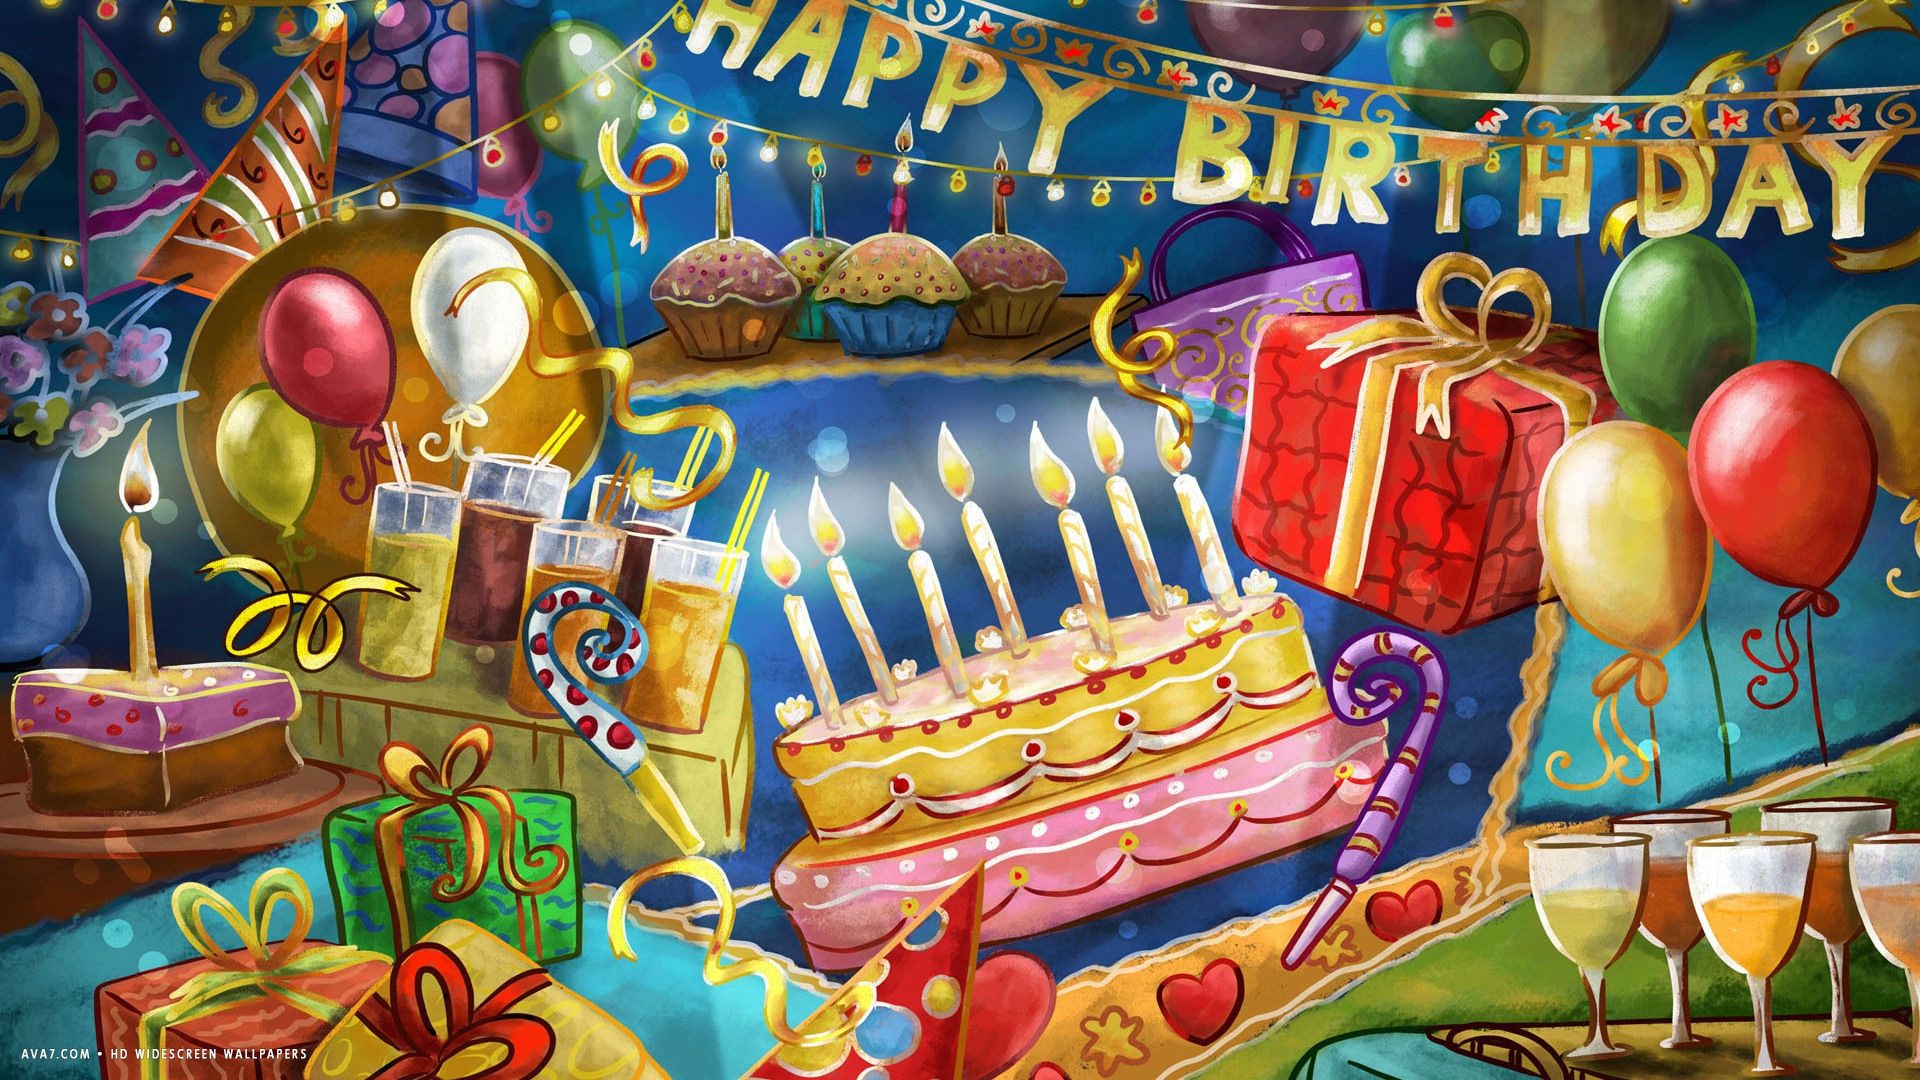 Res: 1920x1080, happy birthday party cake candles confetti balloons party hd widescreen  wallpaper